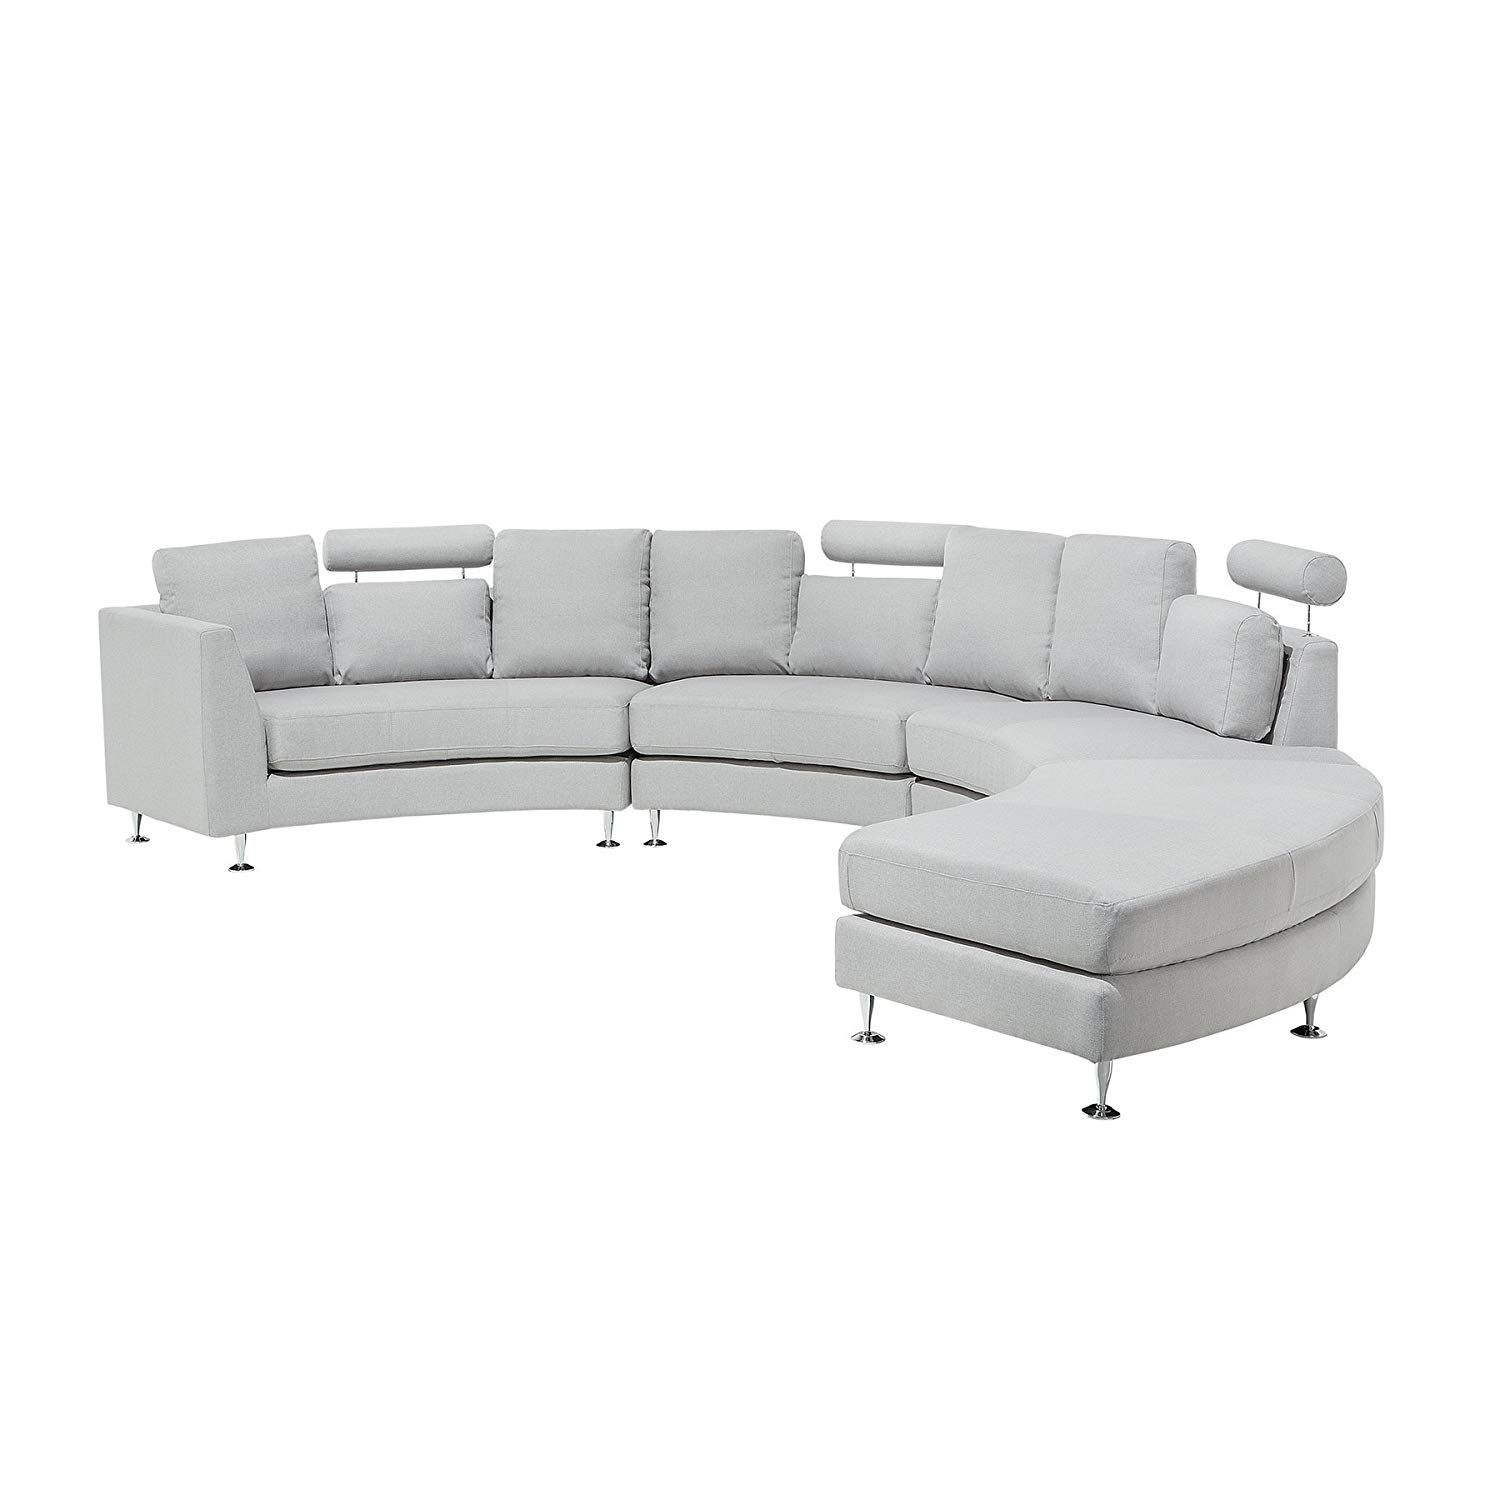 Amazon Sofa Bed Grey Beliani Modern Round Sectional Sofa In Fabric Rotunde Light Grey